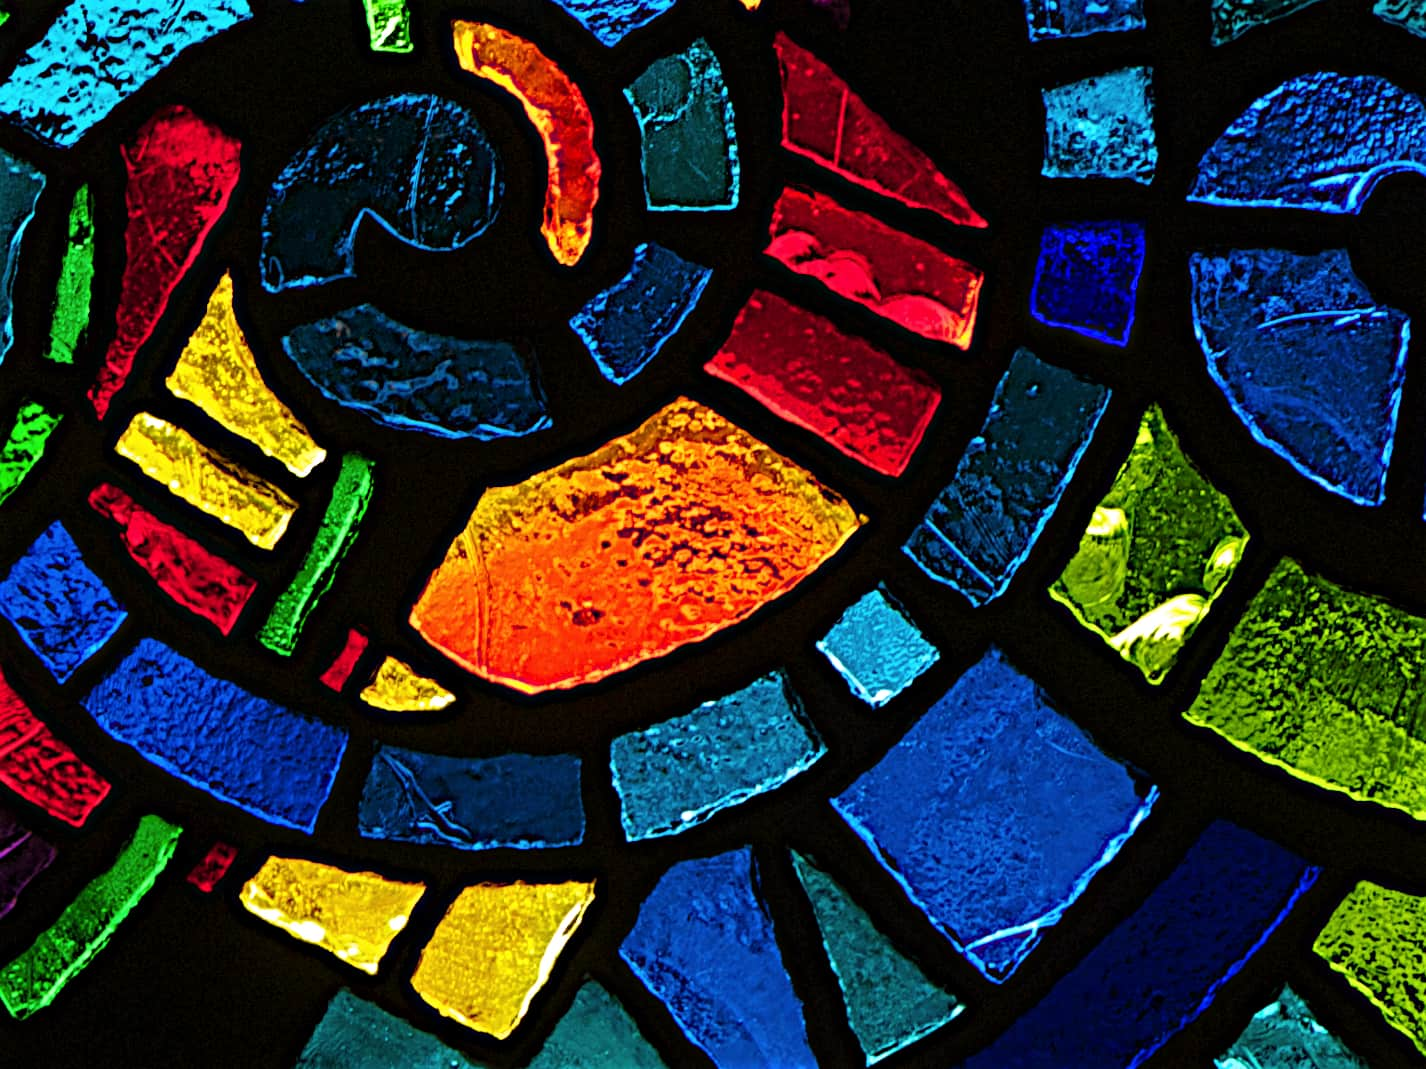 Detail image by (bright stained glass) by Richard Due